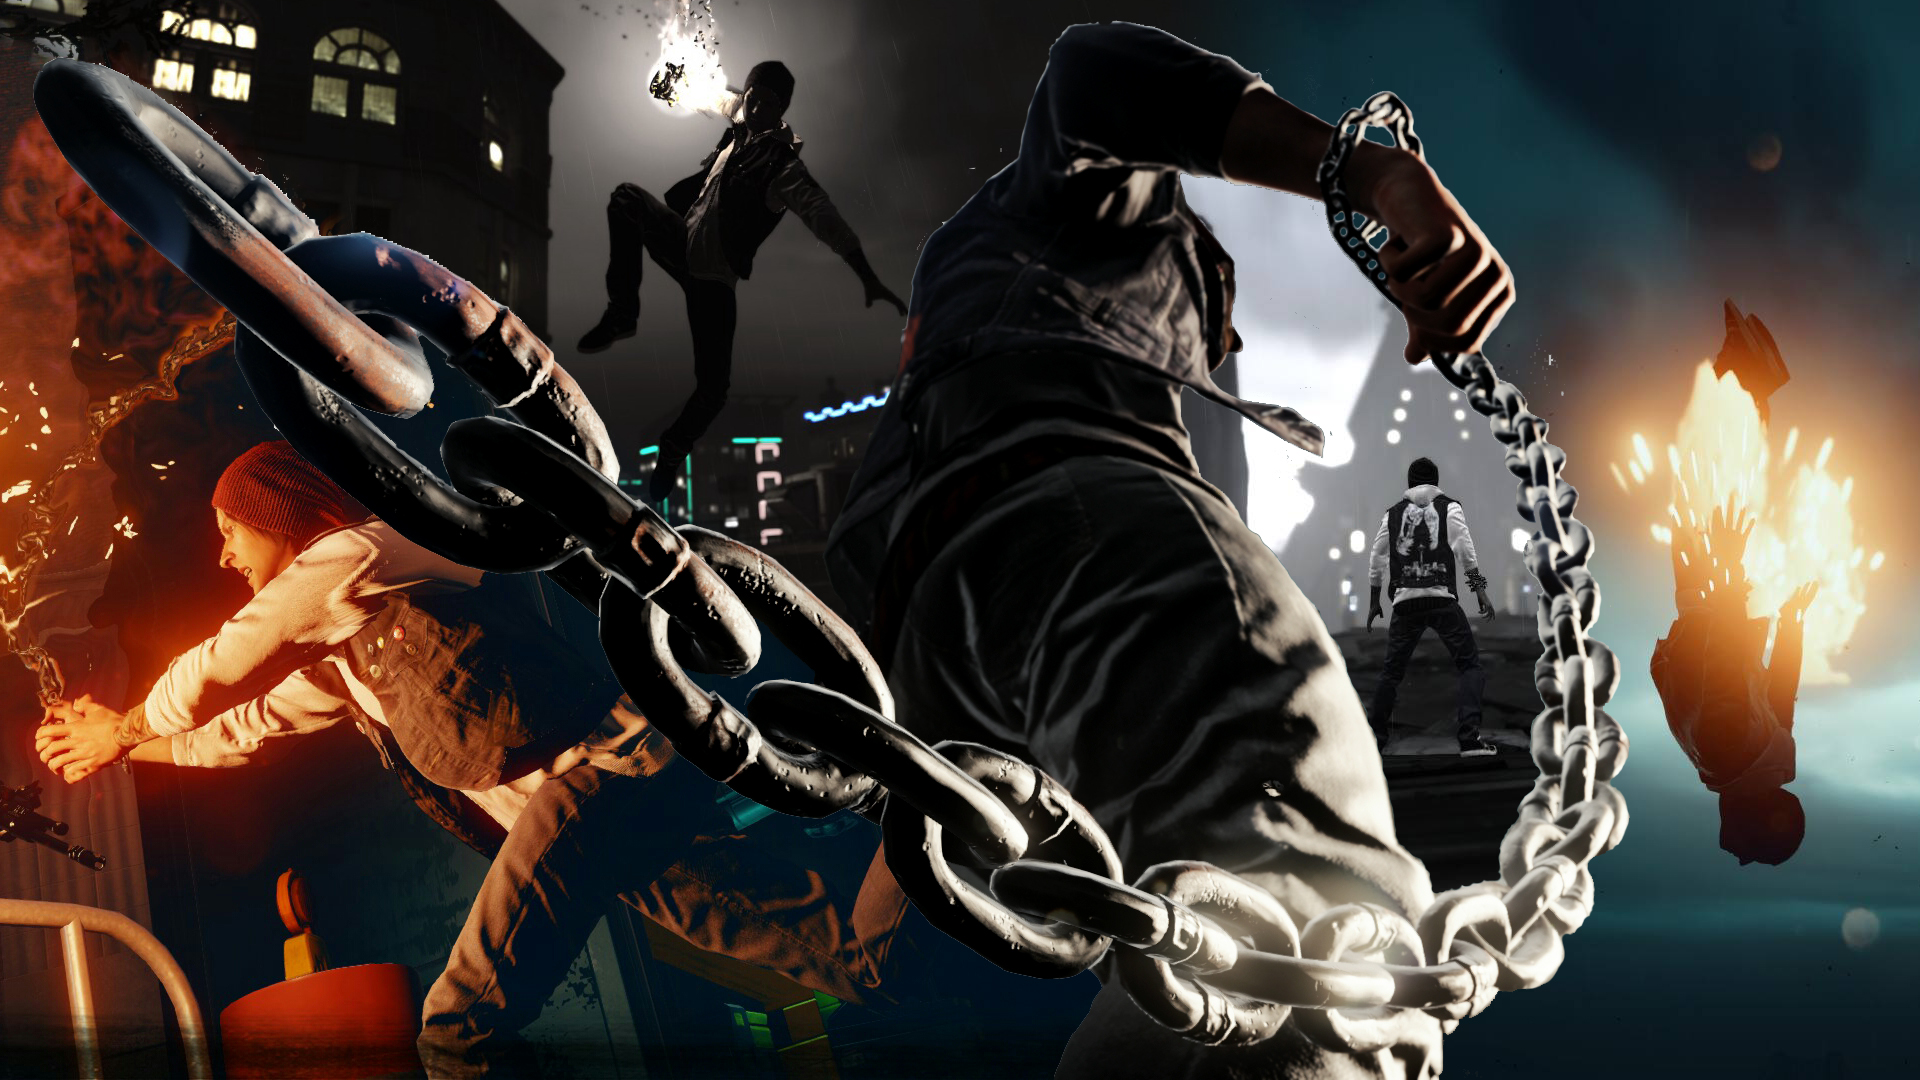 inFAMOUS Second Son HD Wallpapers and Background Images   stmednet 1920x1080